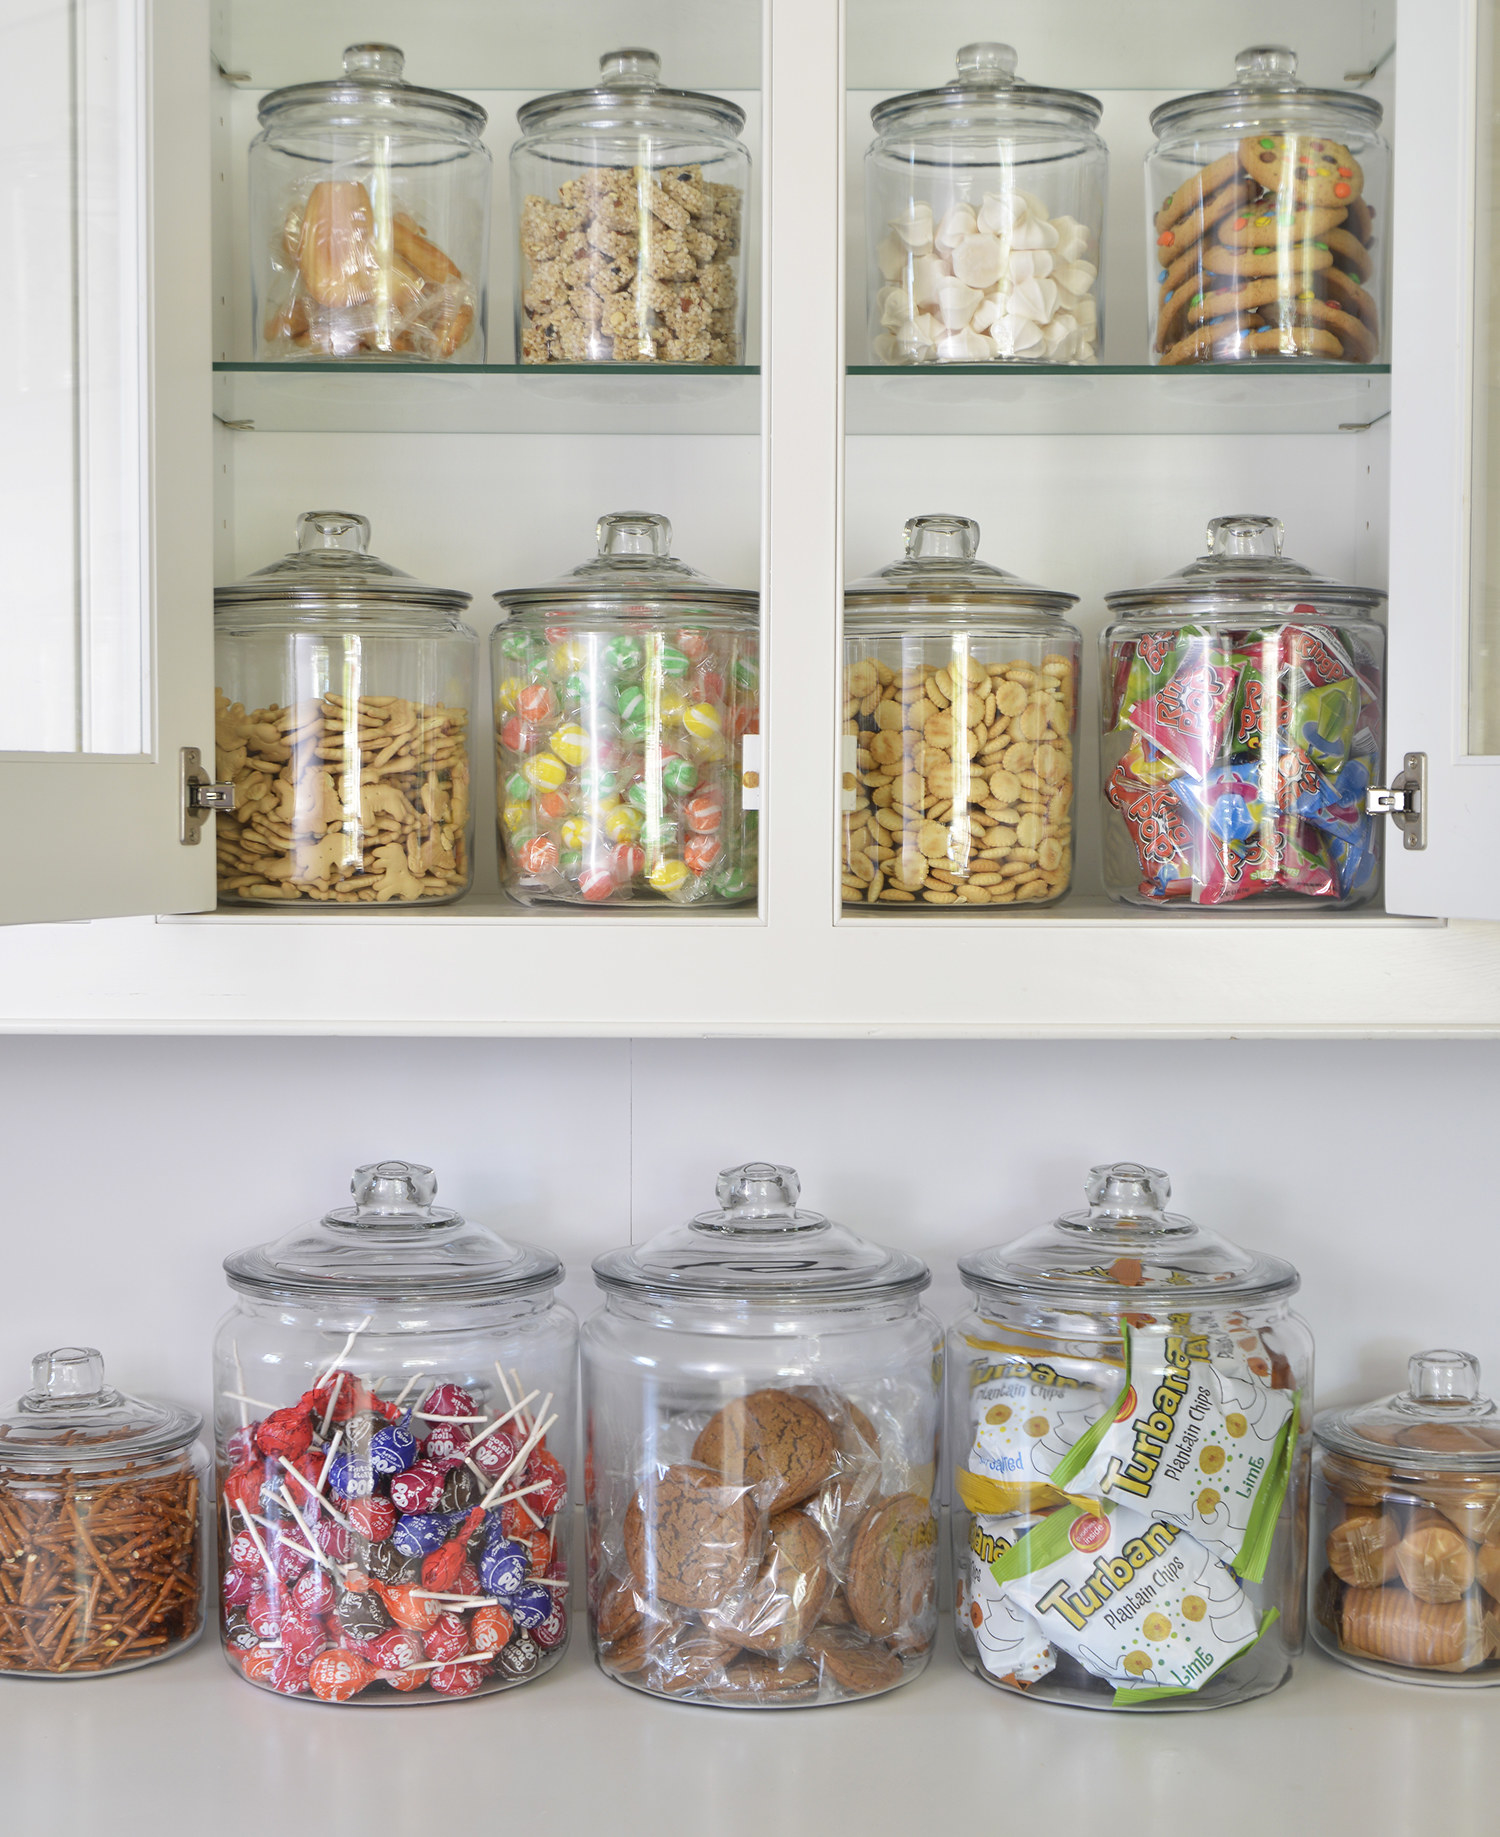 glass jars full of candies and snacks sitting on shelves